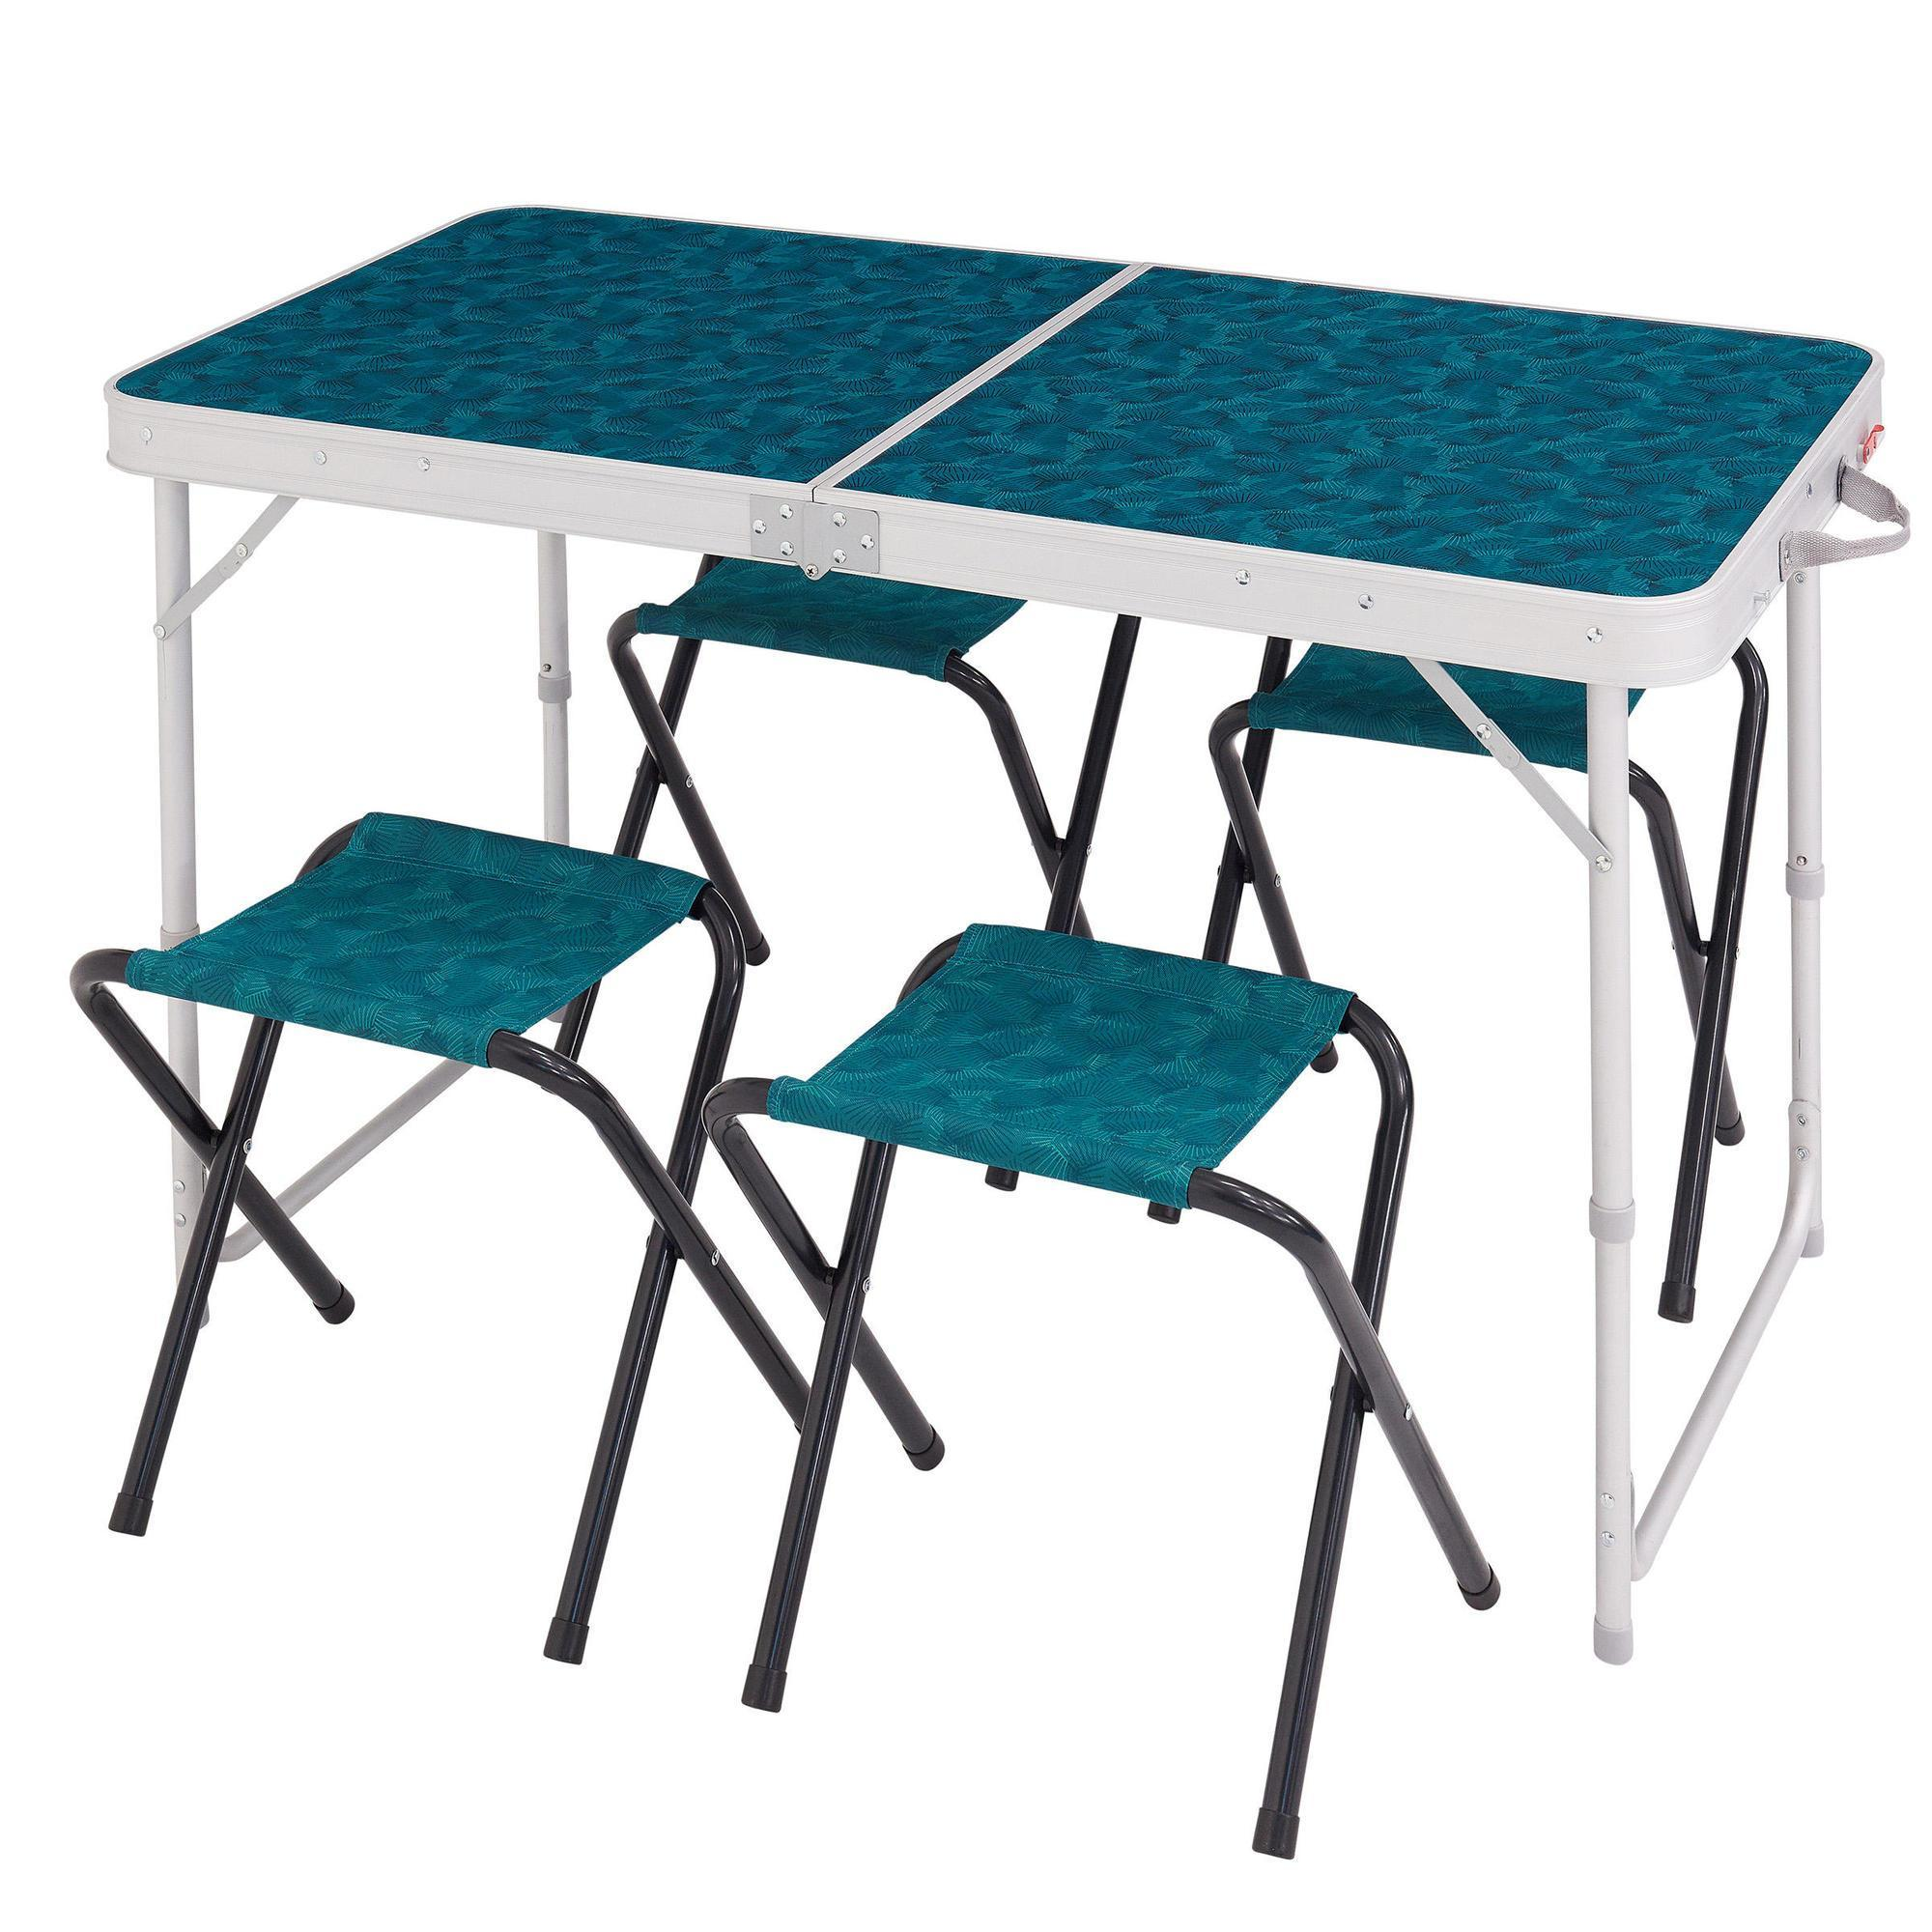 Table Basse Ronde Avec 4 Tabourets Tables Et Armoires De Camping Decathlon